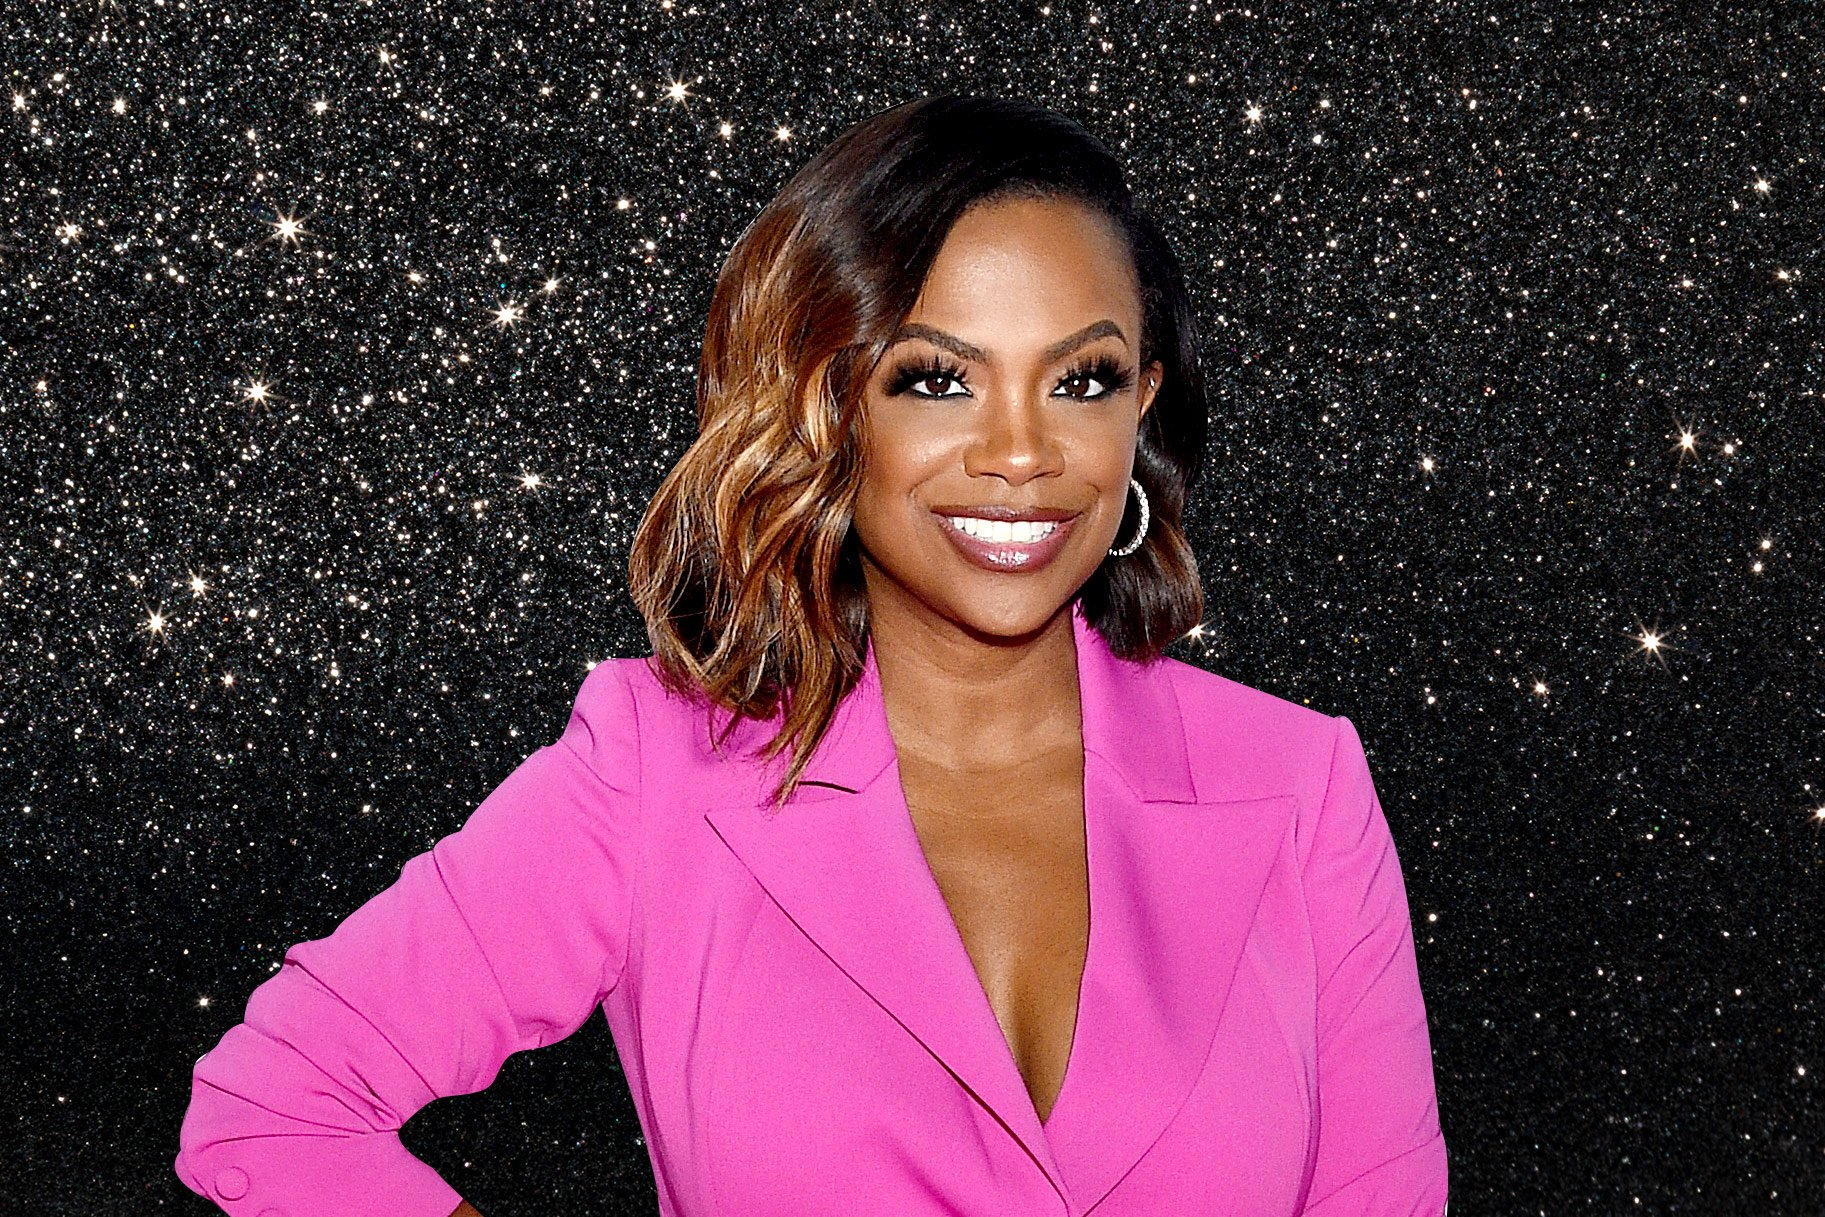 Kandi Burruss Shares Another Throwback Photo – Check Out Her Look With Short Hair